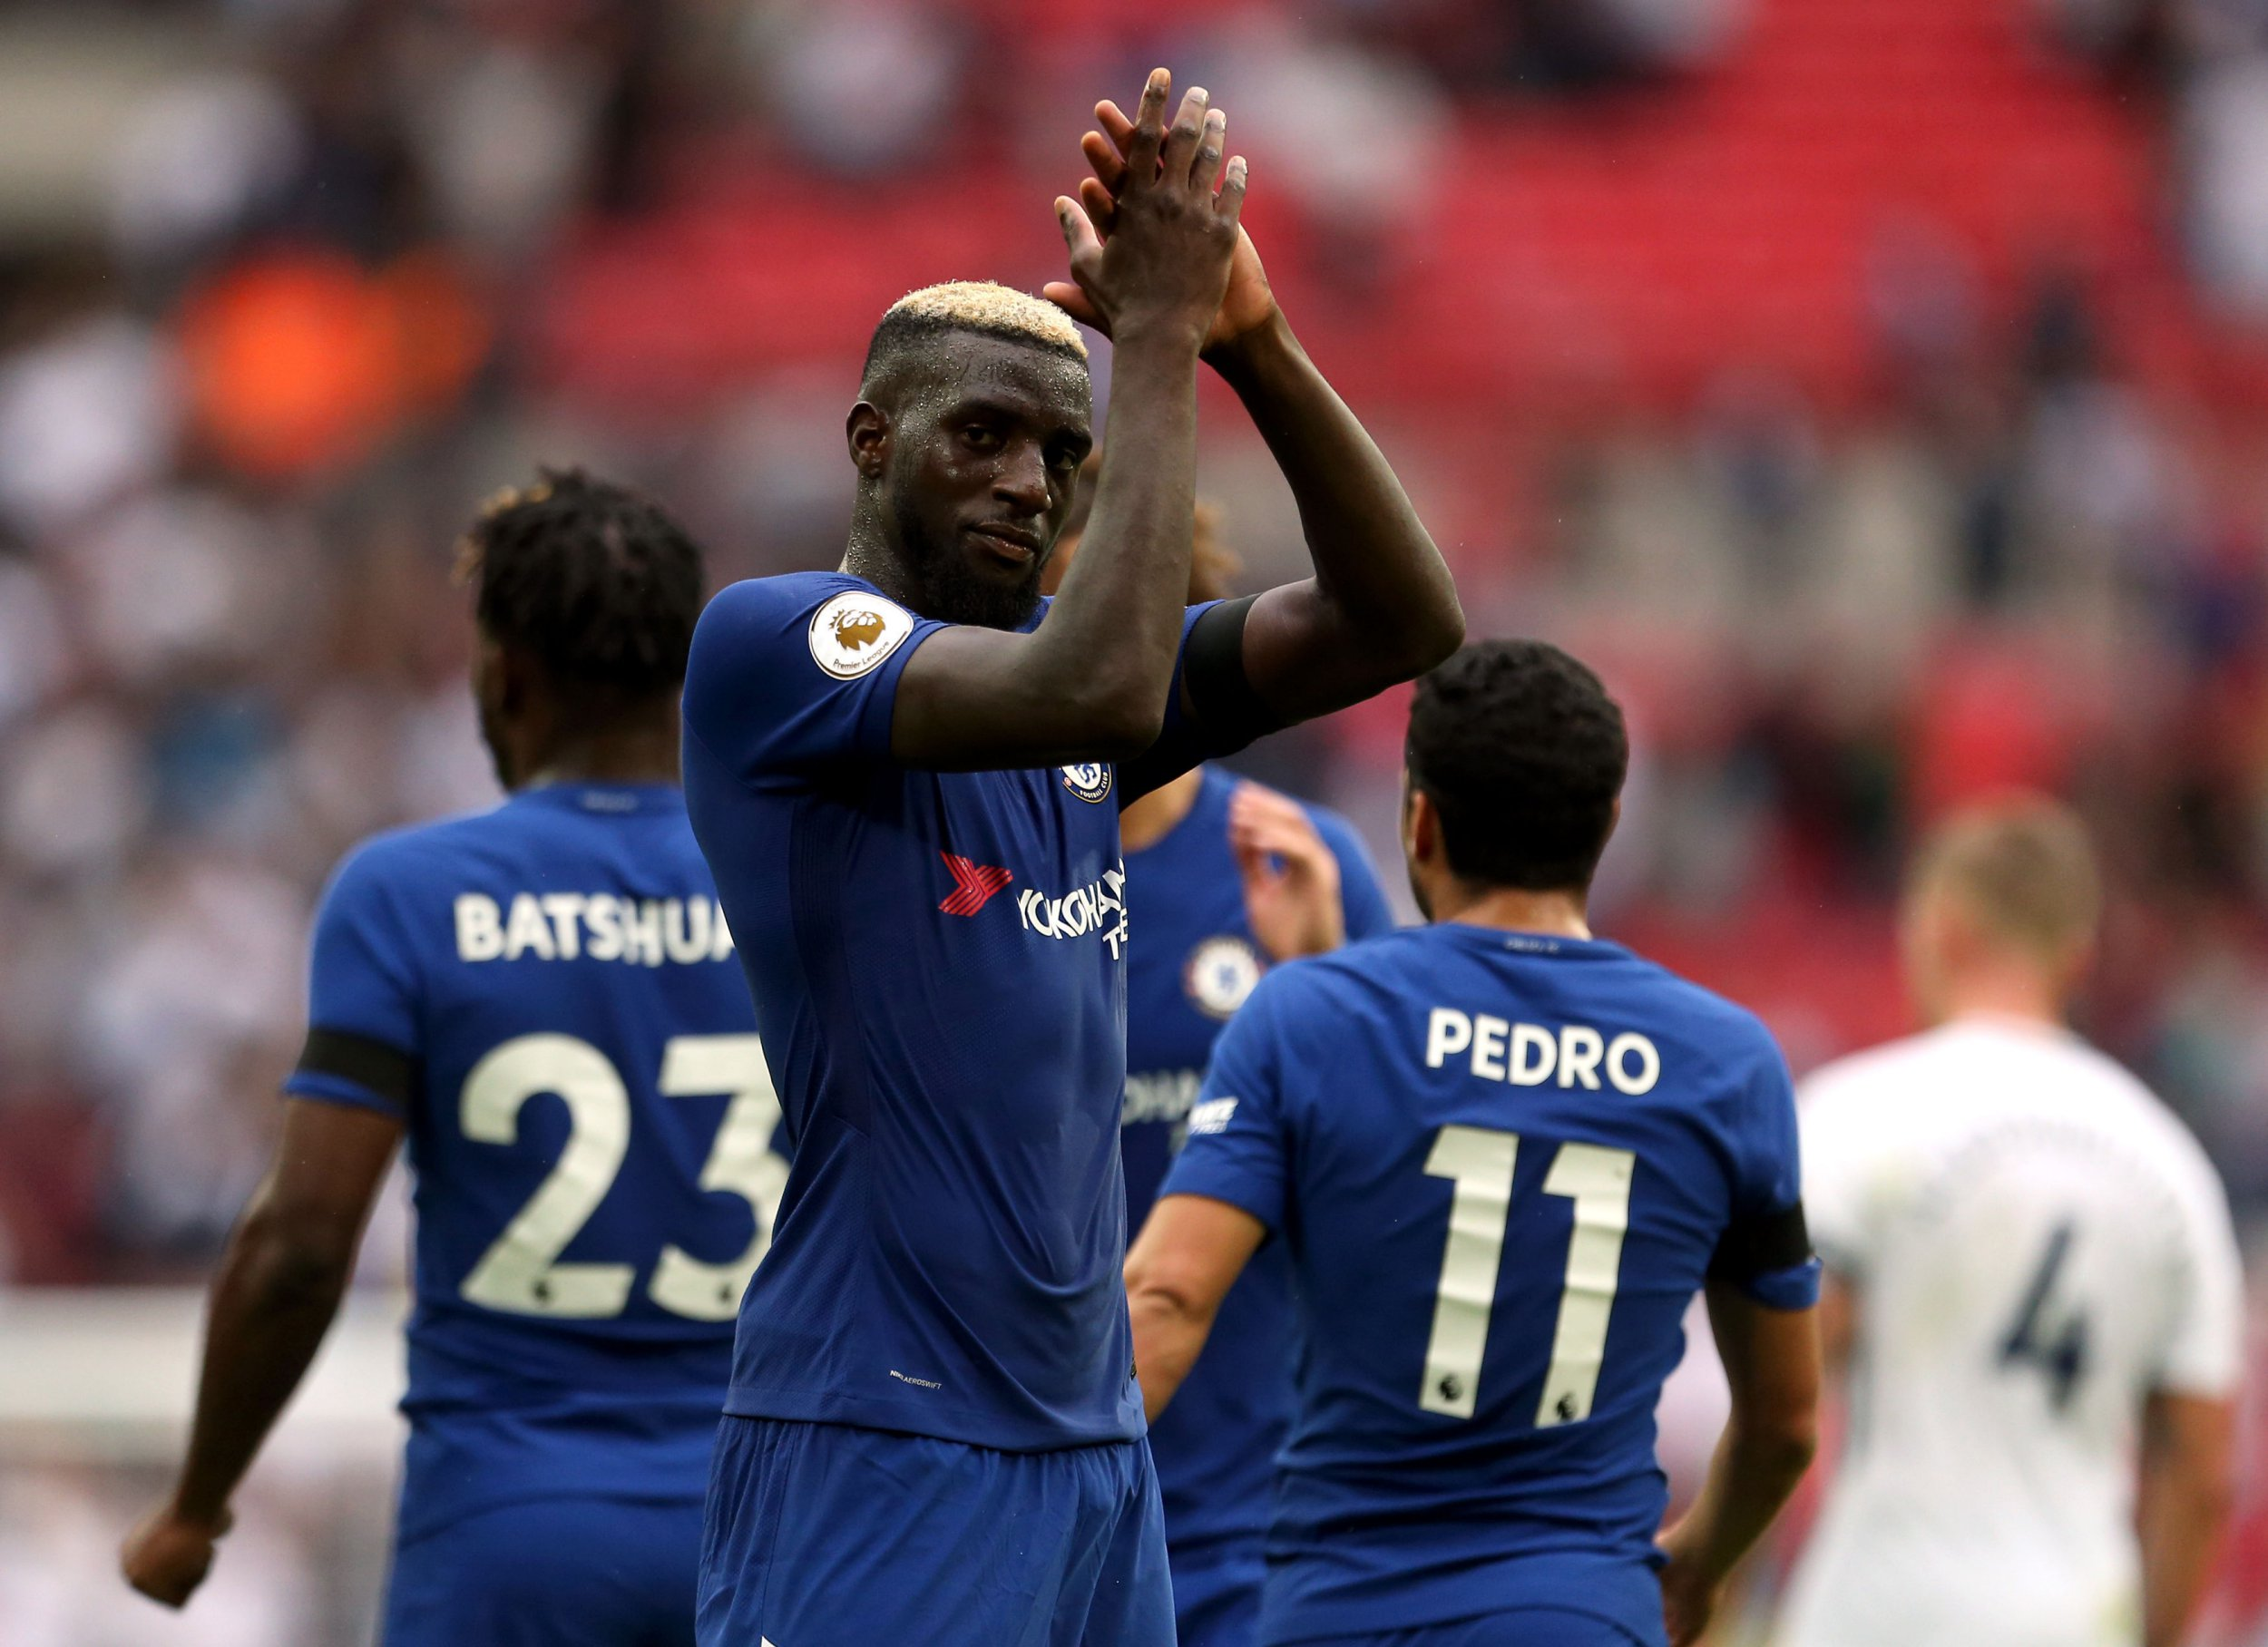 Tiemoue Bakayoko didn't expect to play 90 minutes on his Chelsea debut